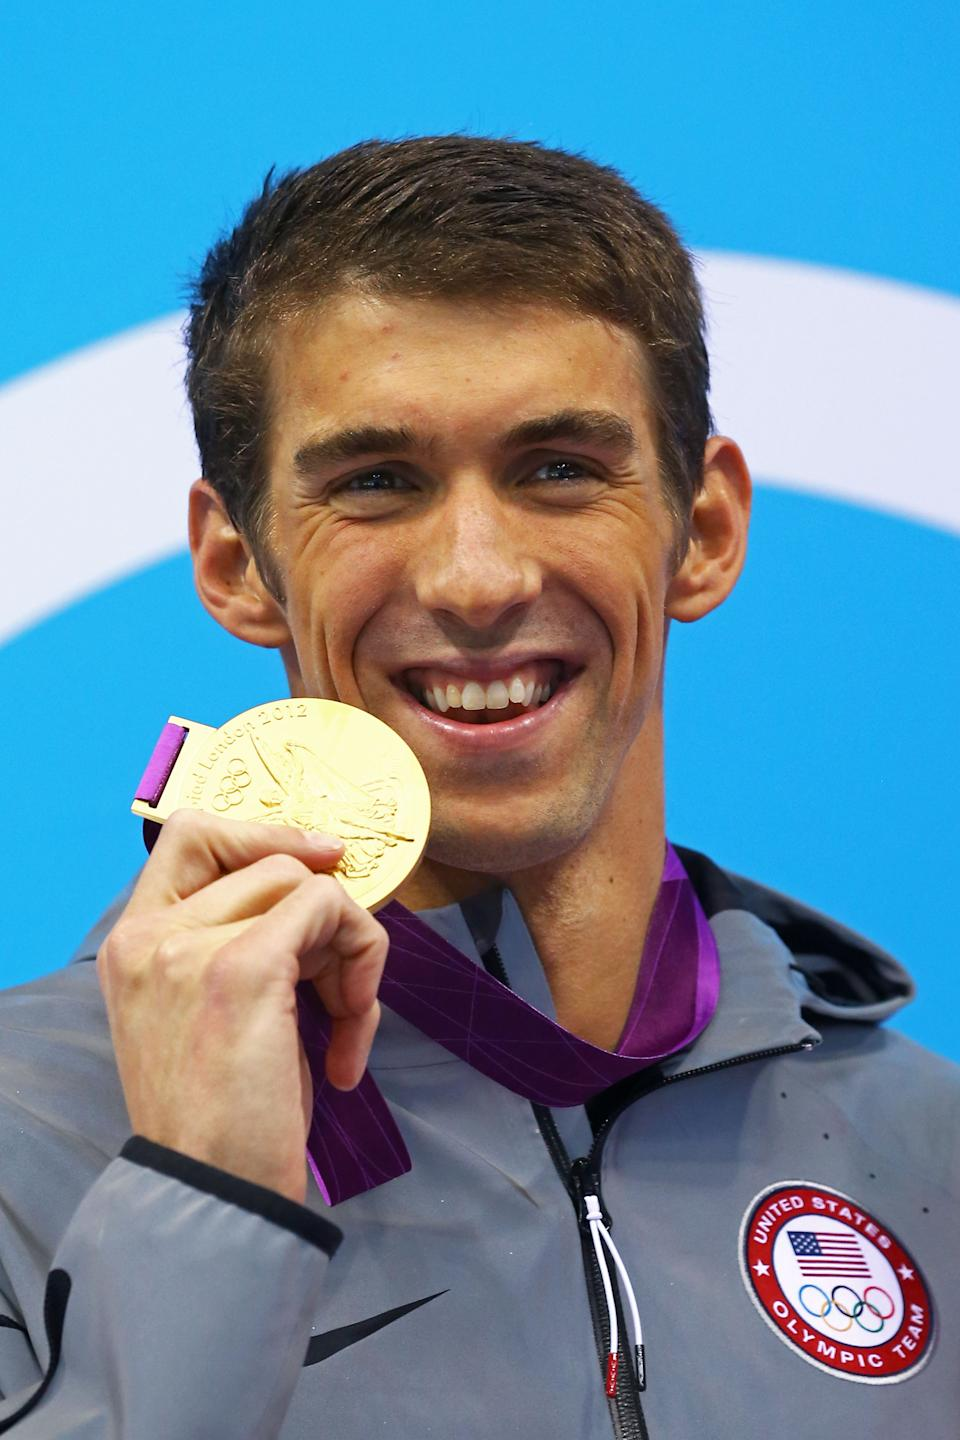 <b>Medal No. 21</b><br>Gold medalist Michael Phelps of the United States poses on the podium during the medal ceremony for the Men's 100m Butterfly Final on Day 7 of the London 2012 Olympic Games at the Aquatics Centre on August 3, 2012 in London, England. (Photo by Al Bello/Getty Images)